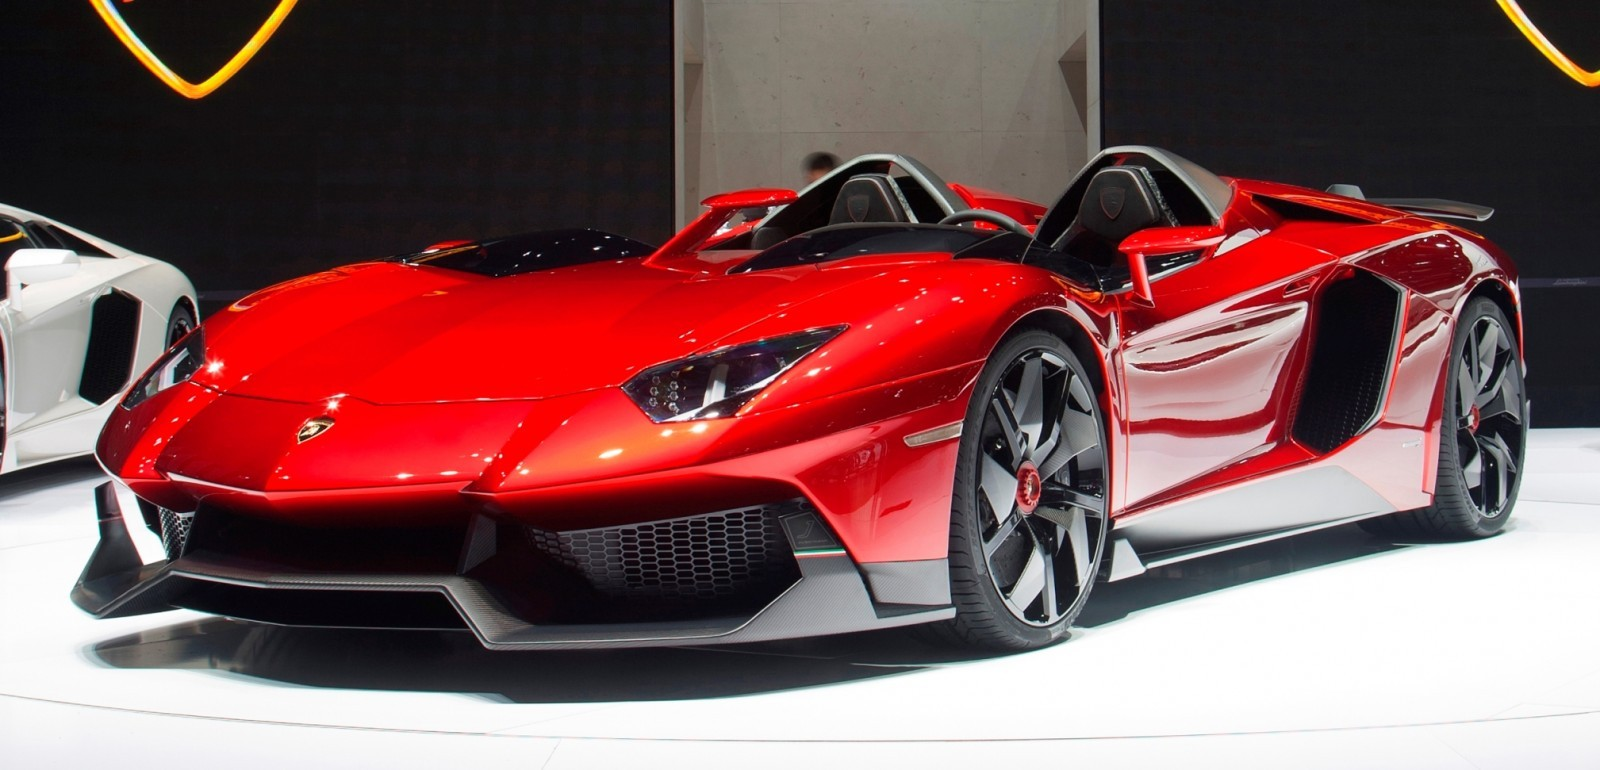 Hypercar Showcase - 2014 Lamborghini Aventador Trumped Only By Aventador J and Aventador Roadster 21